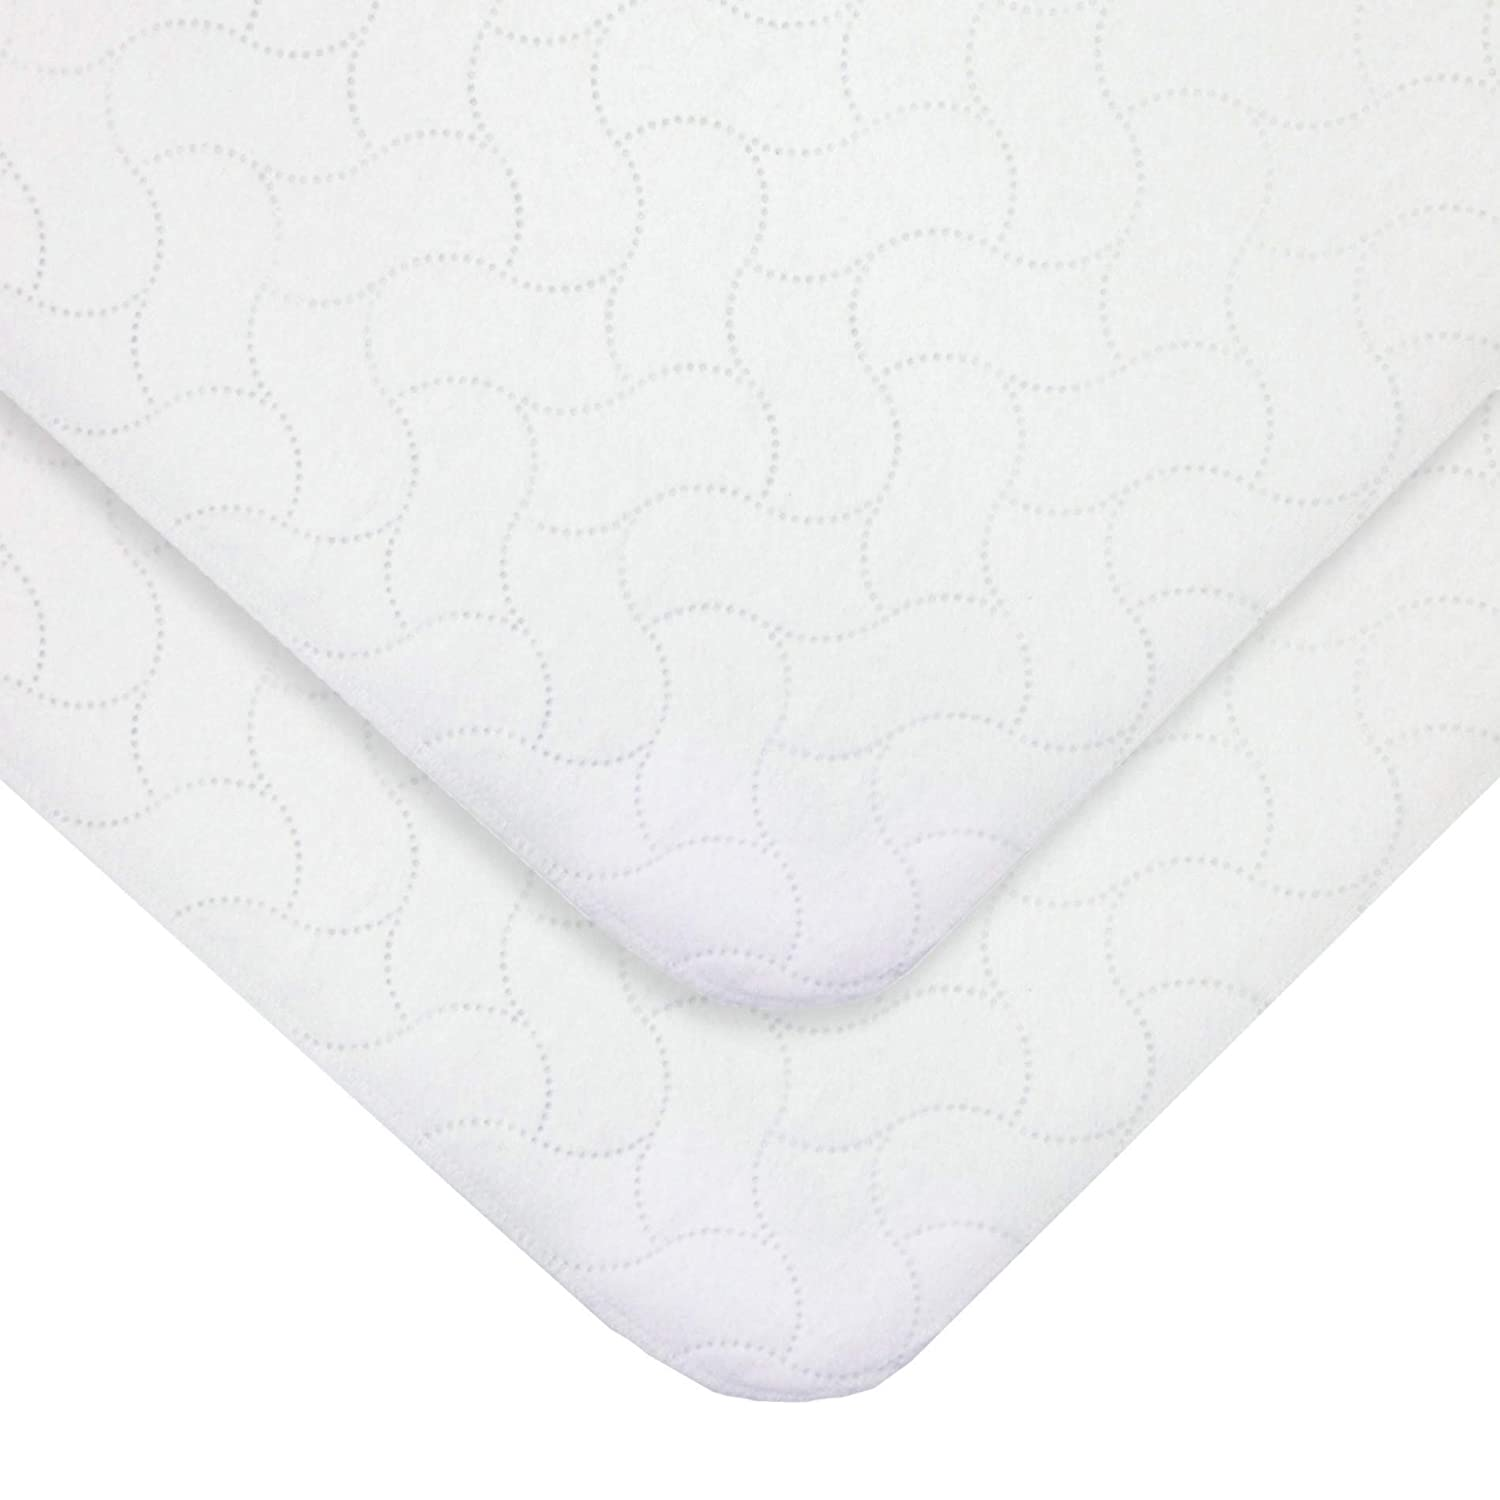 American Baby Company Waterproof Embossed Quilt-Like Flat Crib Protective Pad Cover for Boys and Girls, White 22853